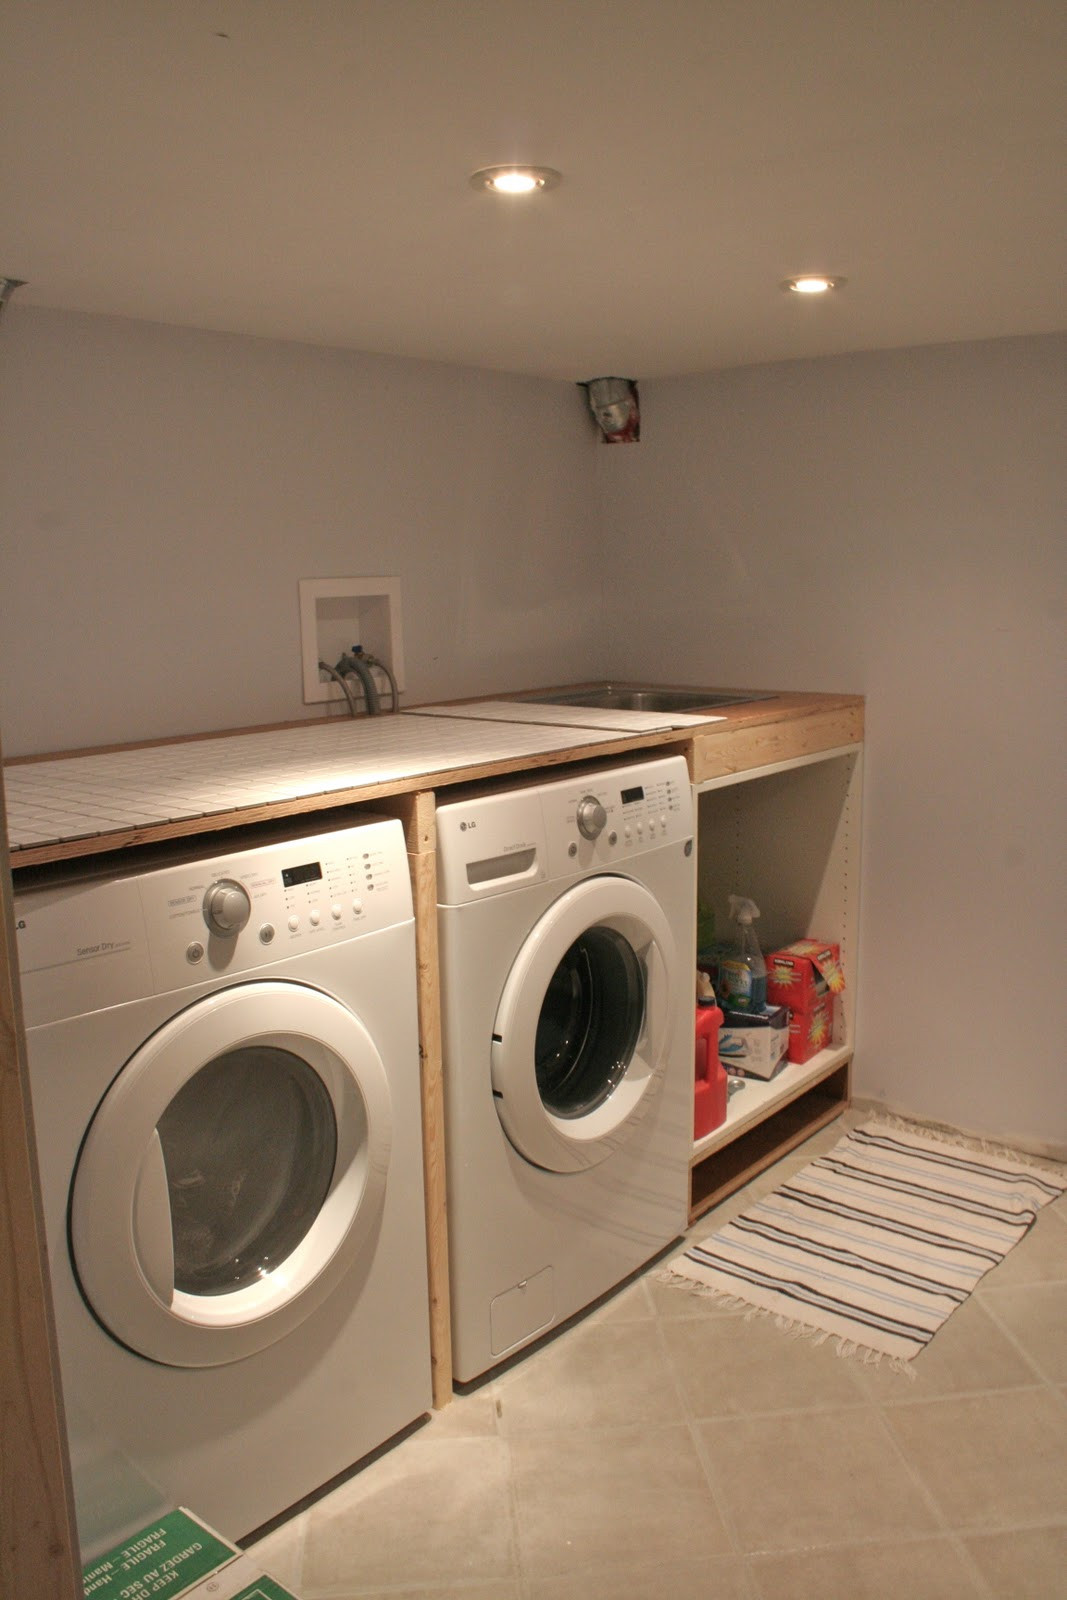 Best ideas about Laundry Room Countertop . Save or Pin Marvelous Laundry Room Countertop 2 Idea Laundry Room Now.